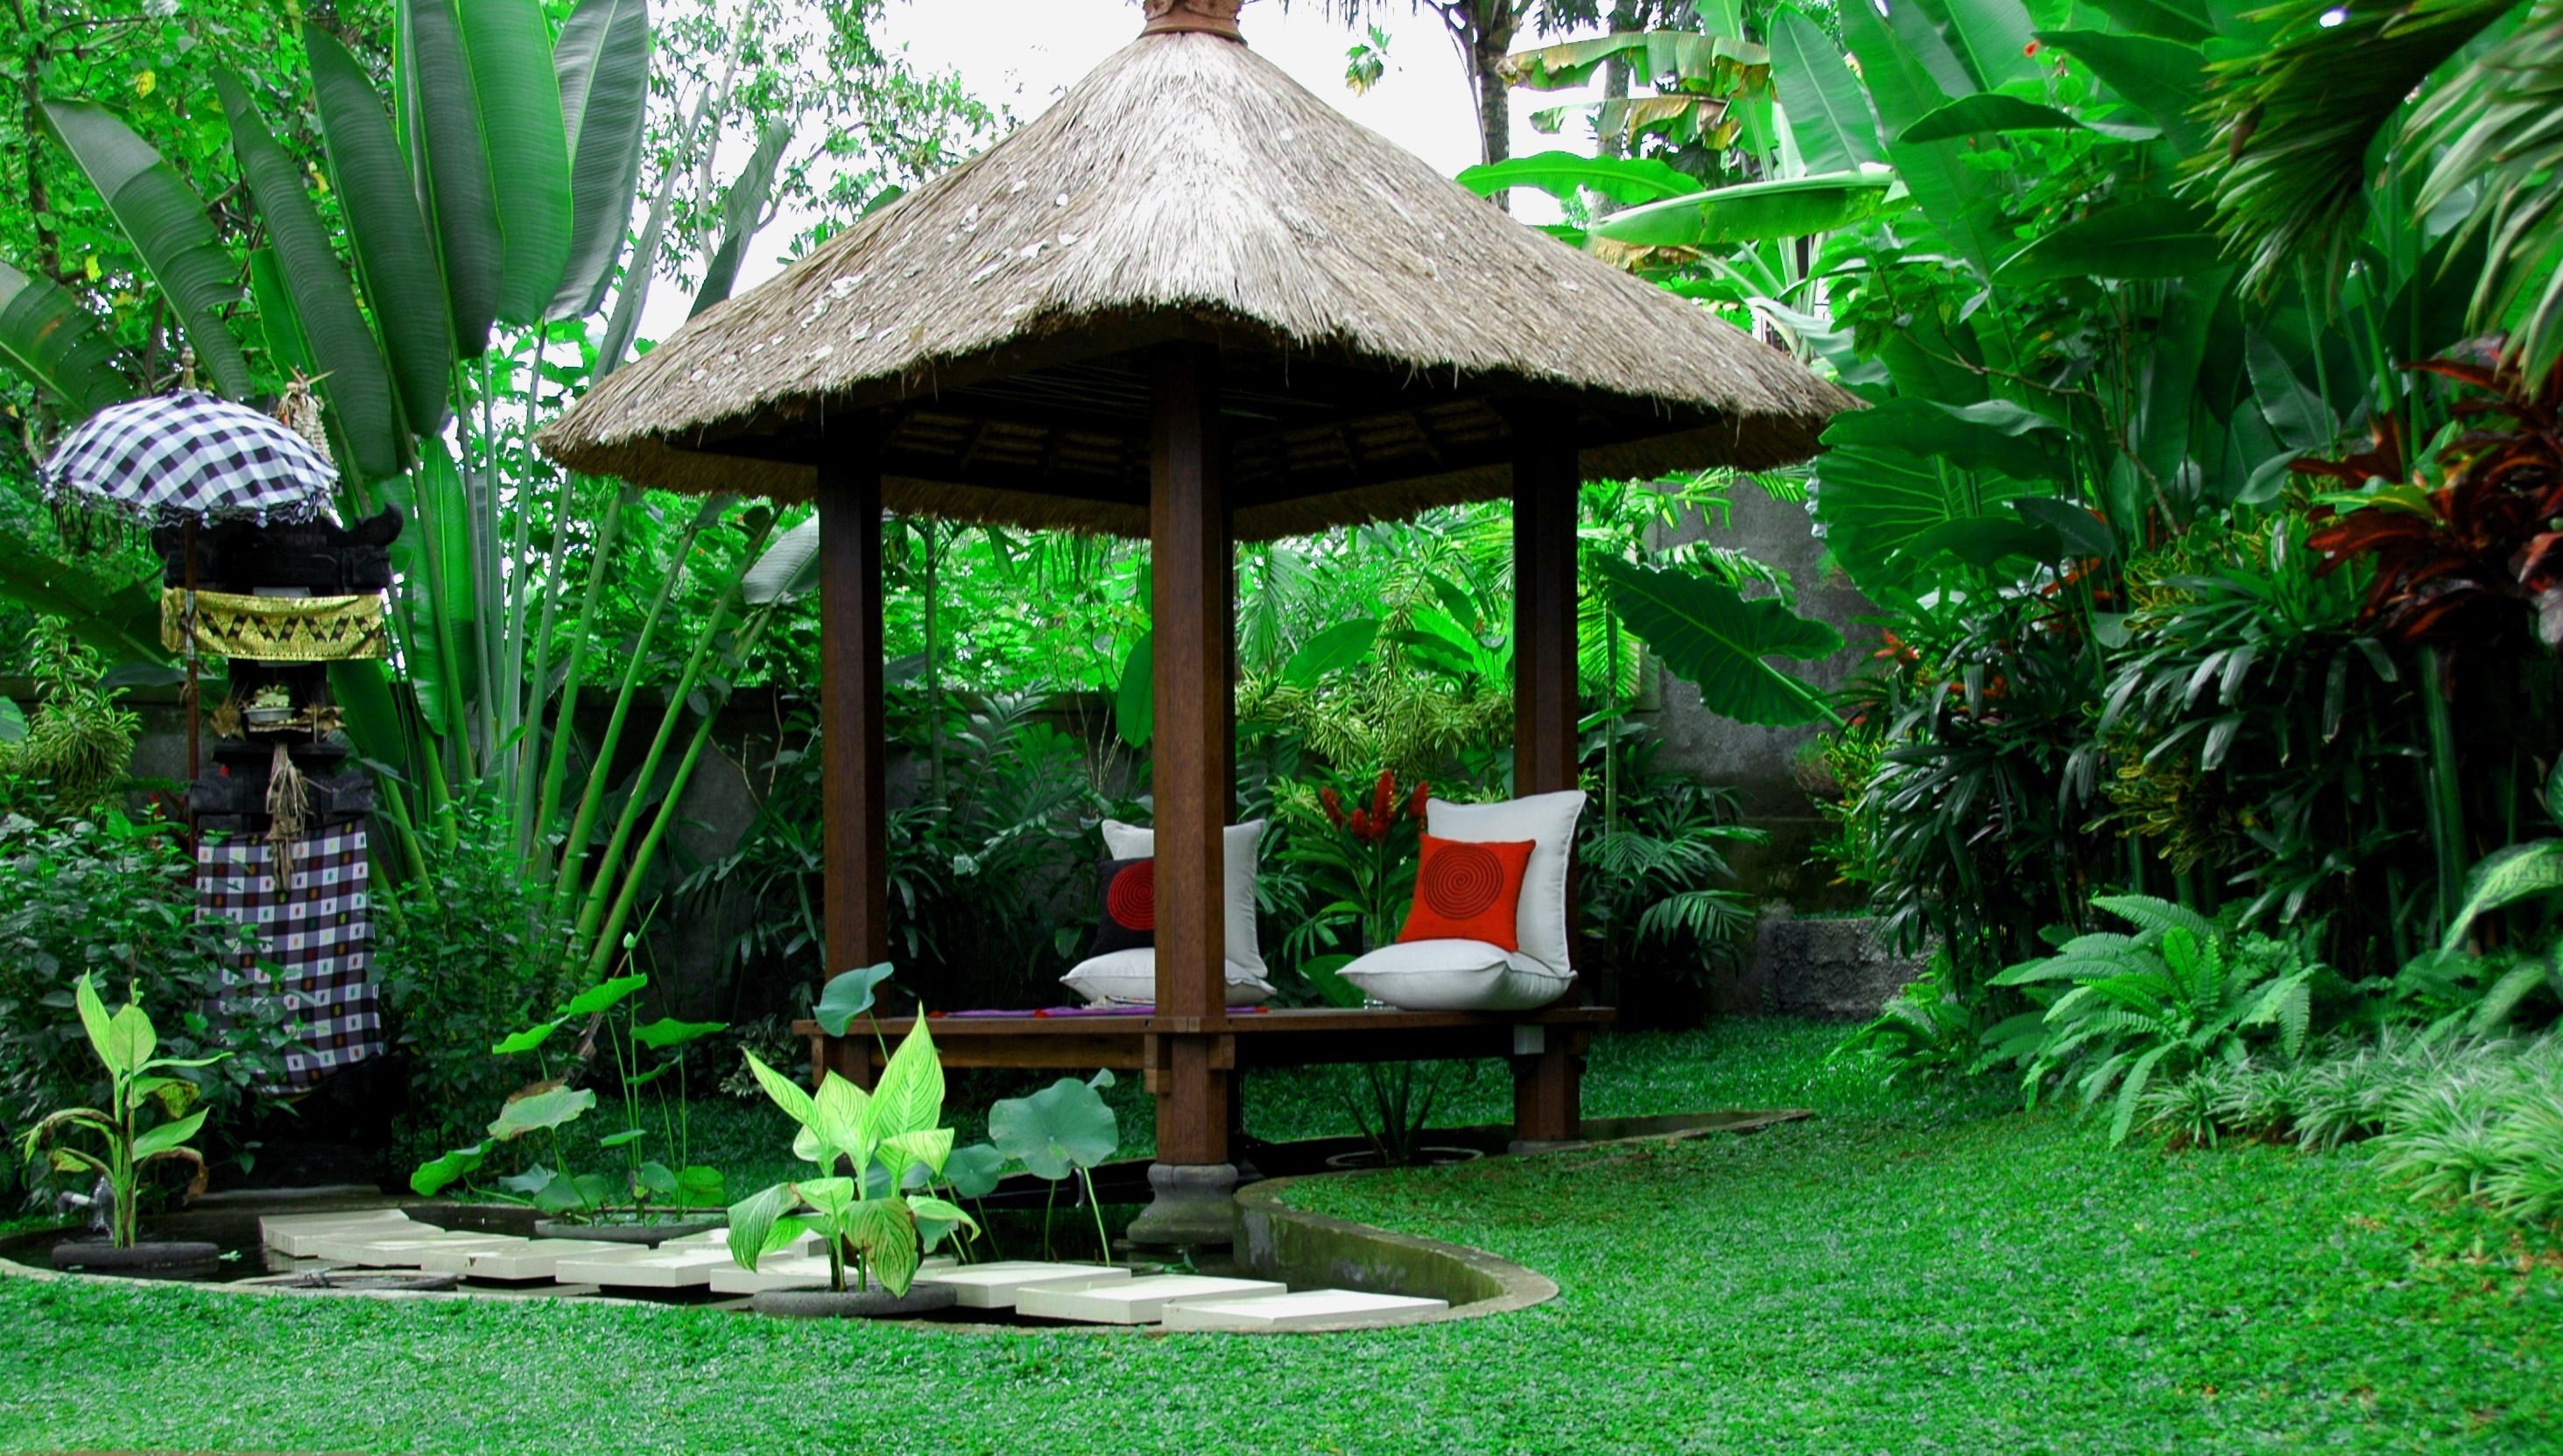 Balinese garden can serve as an additional choice to for Bali landscape design